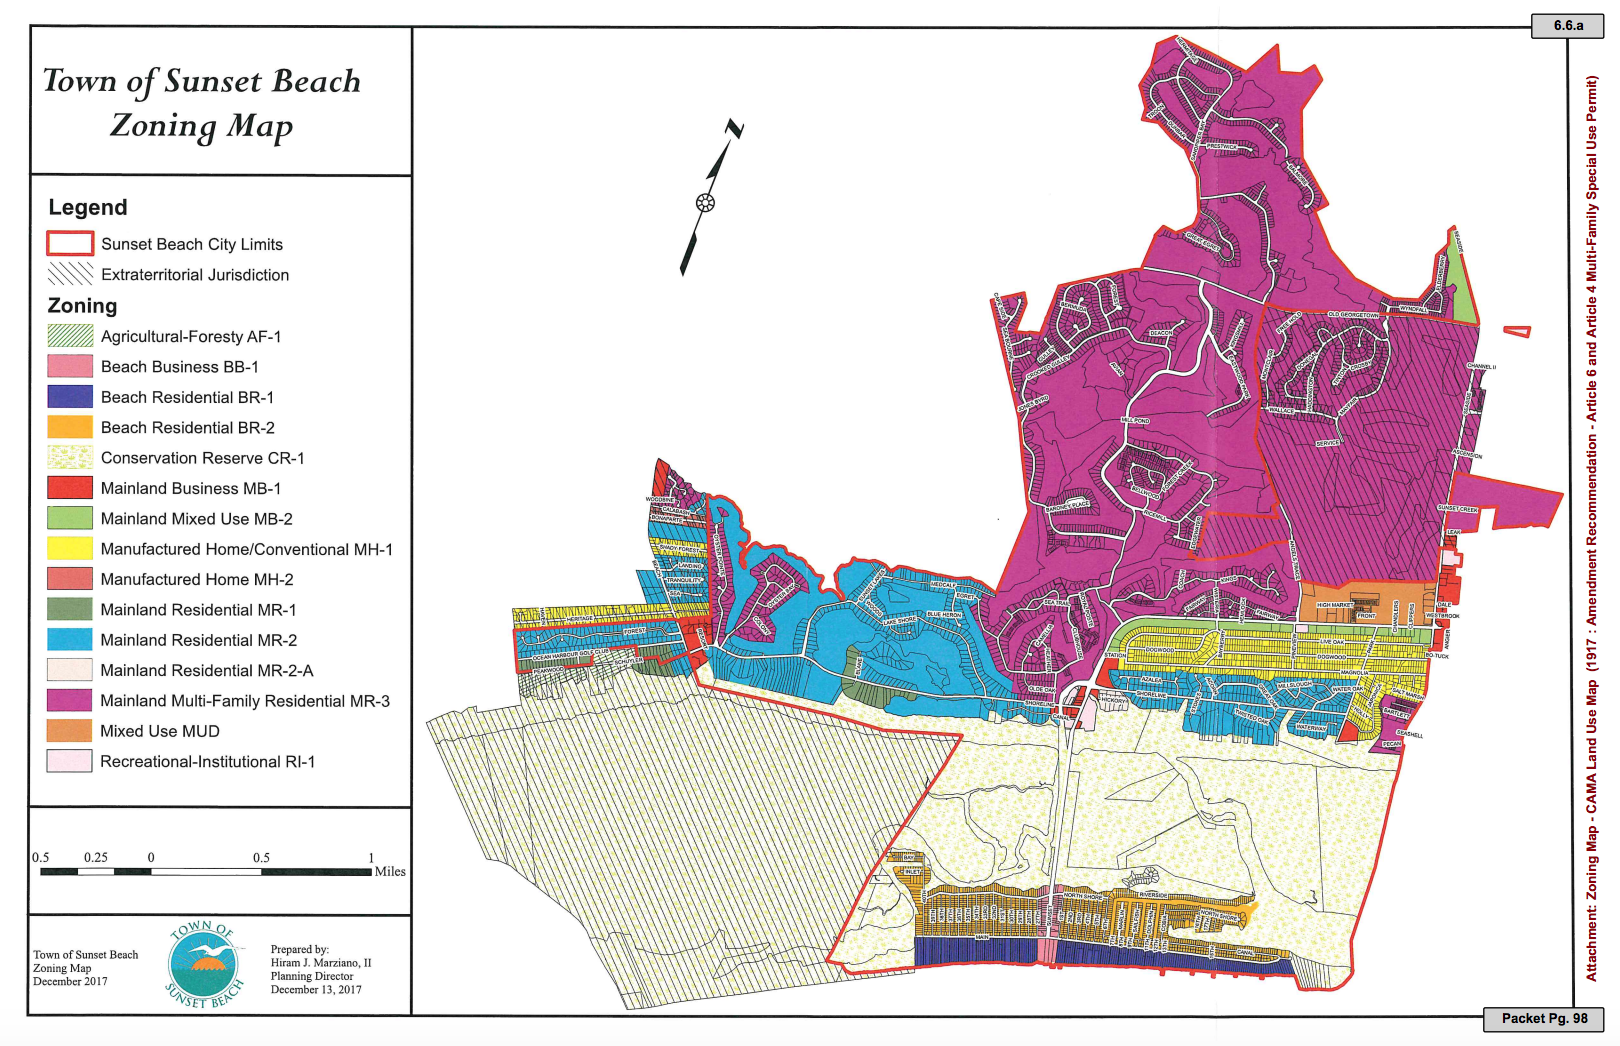 Multi-family developments in MR-3, the town's most prolific zoning district (shown in pink), now require special use permits. Before, they were permitted by right. (Port City Daily photo/Courtesy Town of Sunset Beach)